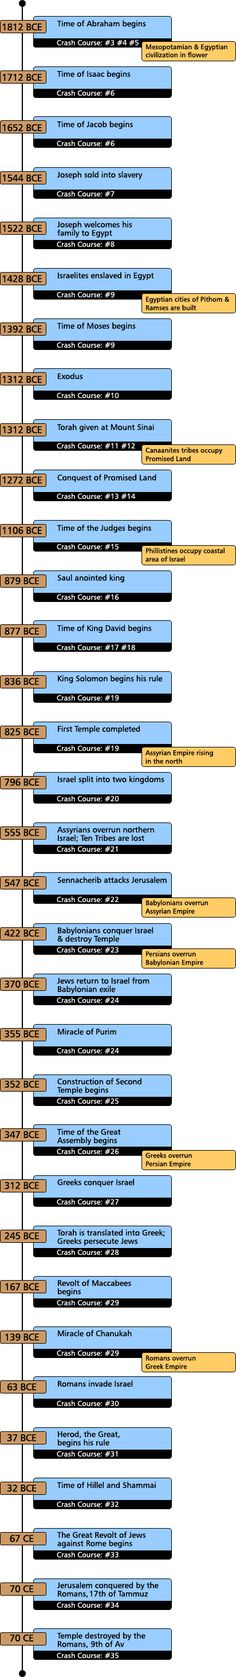 History Crash Course #68: Timeline: From Abraham to the State of Israel.  Good, easily understandable history of the Jewish nation.